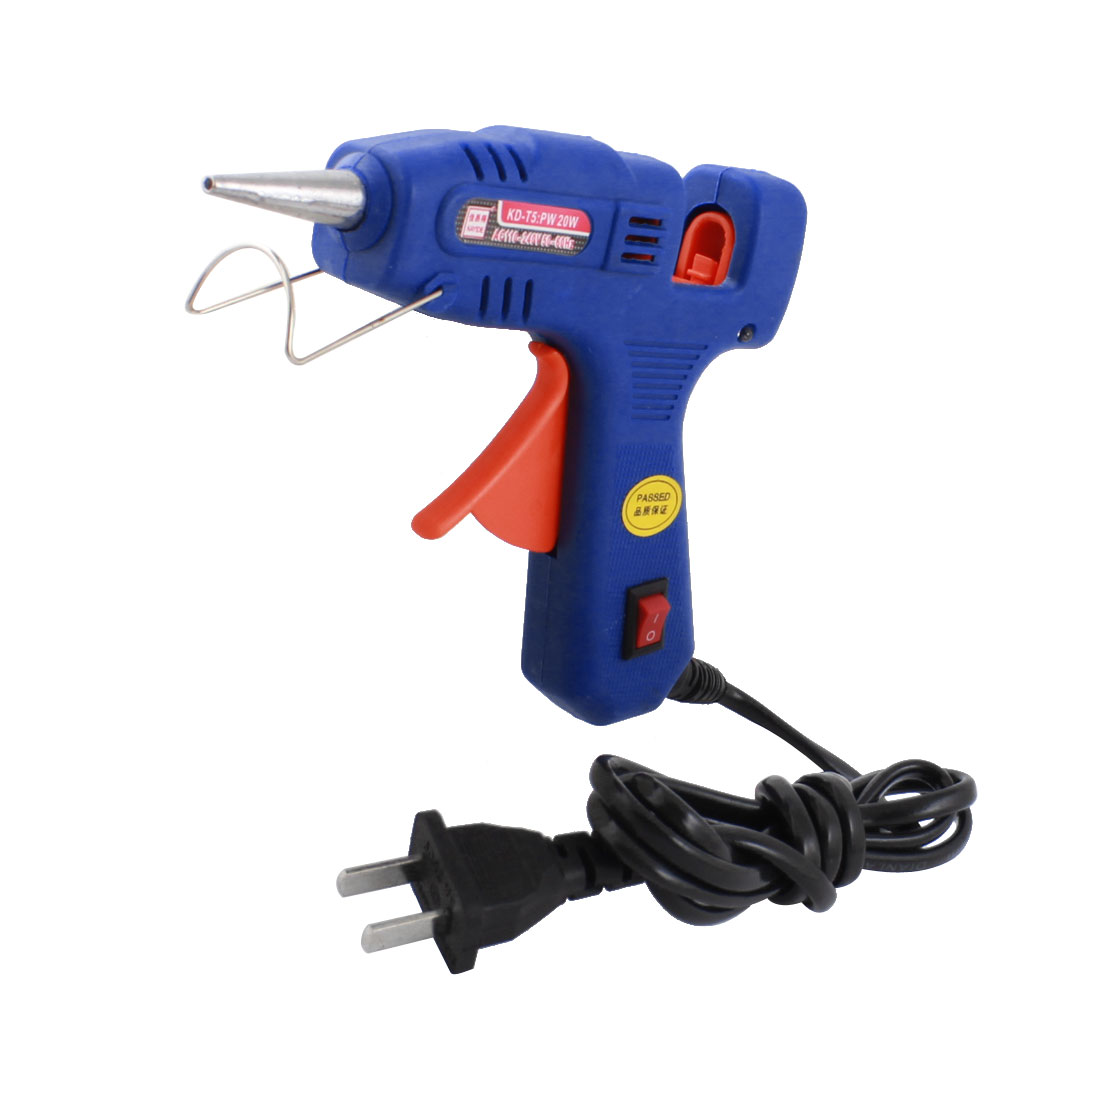 AC 110-240V US Plug 20W 2mm Tapered Nozzle Hot Melt Glue Gun KD-T5